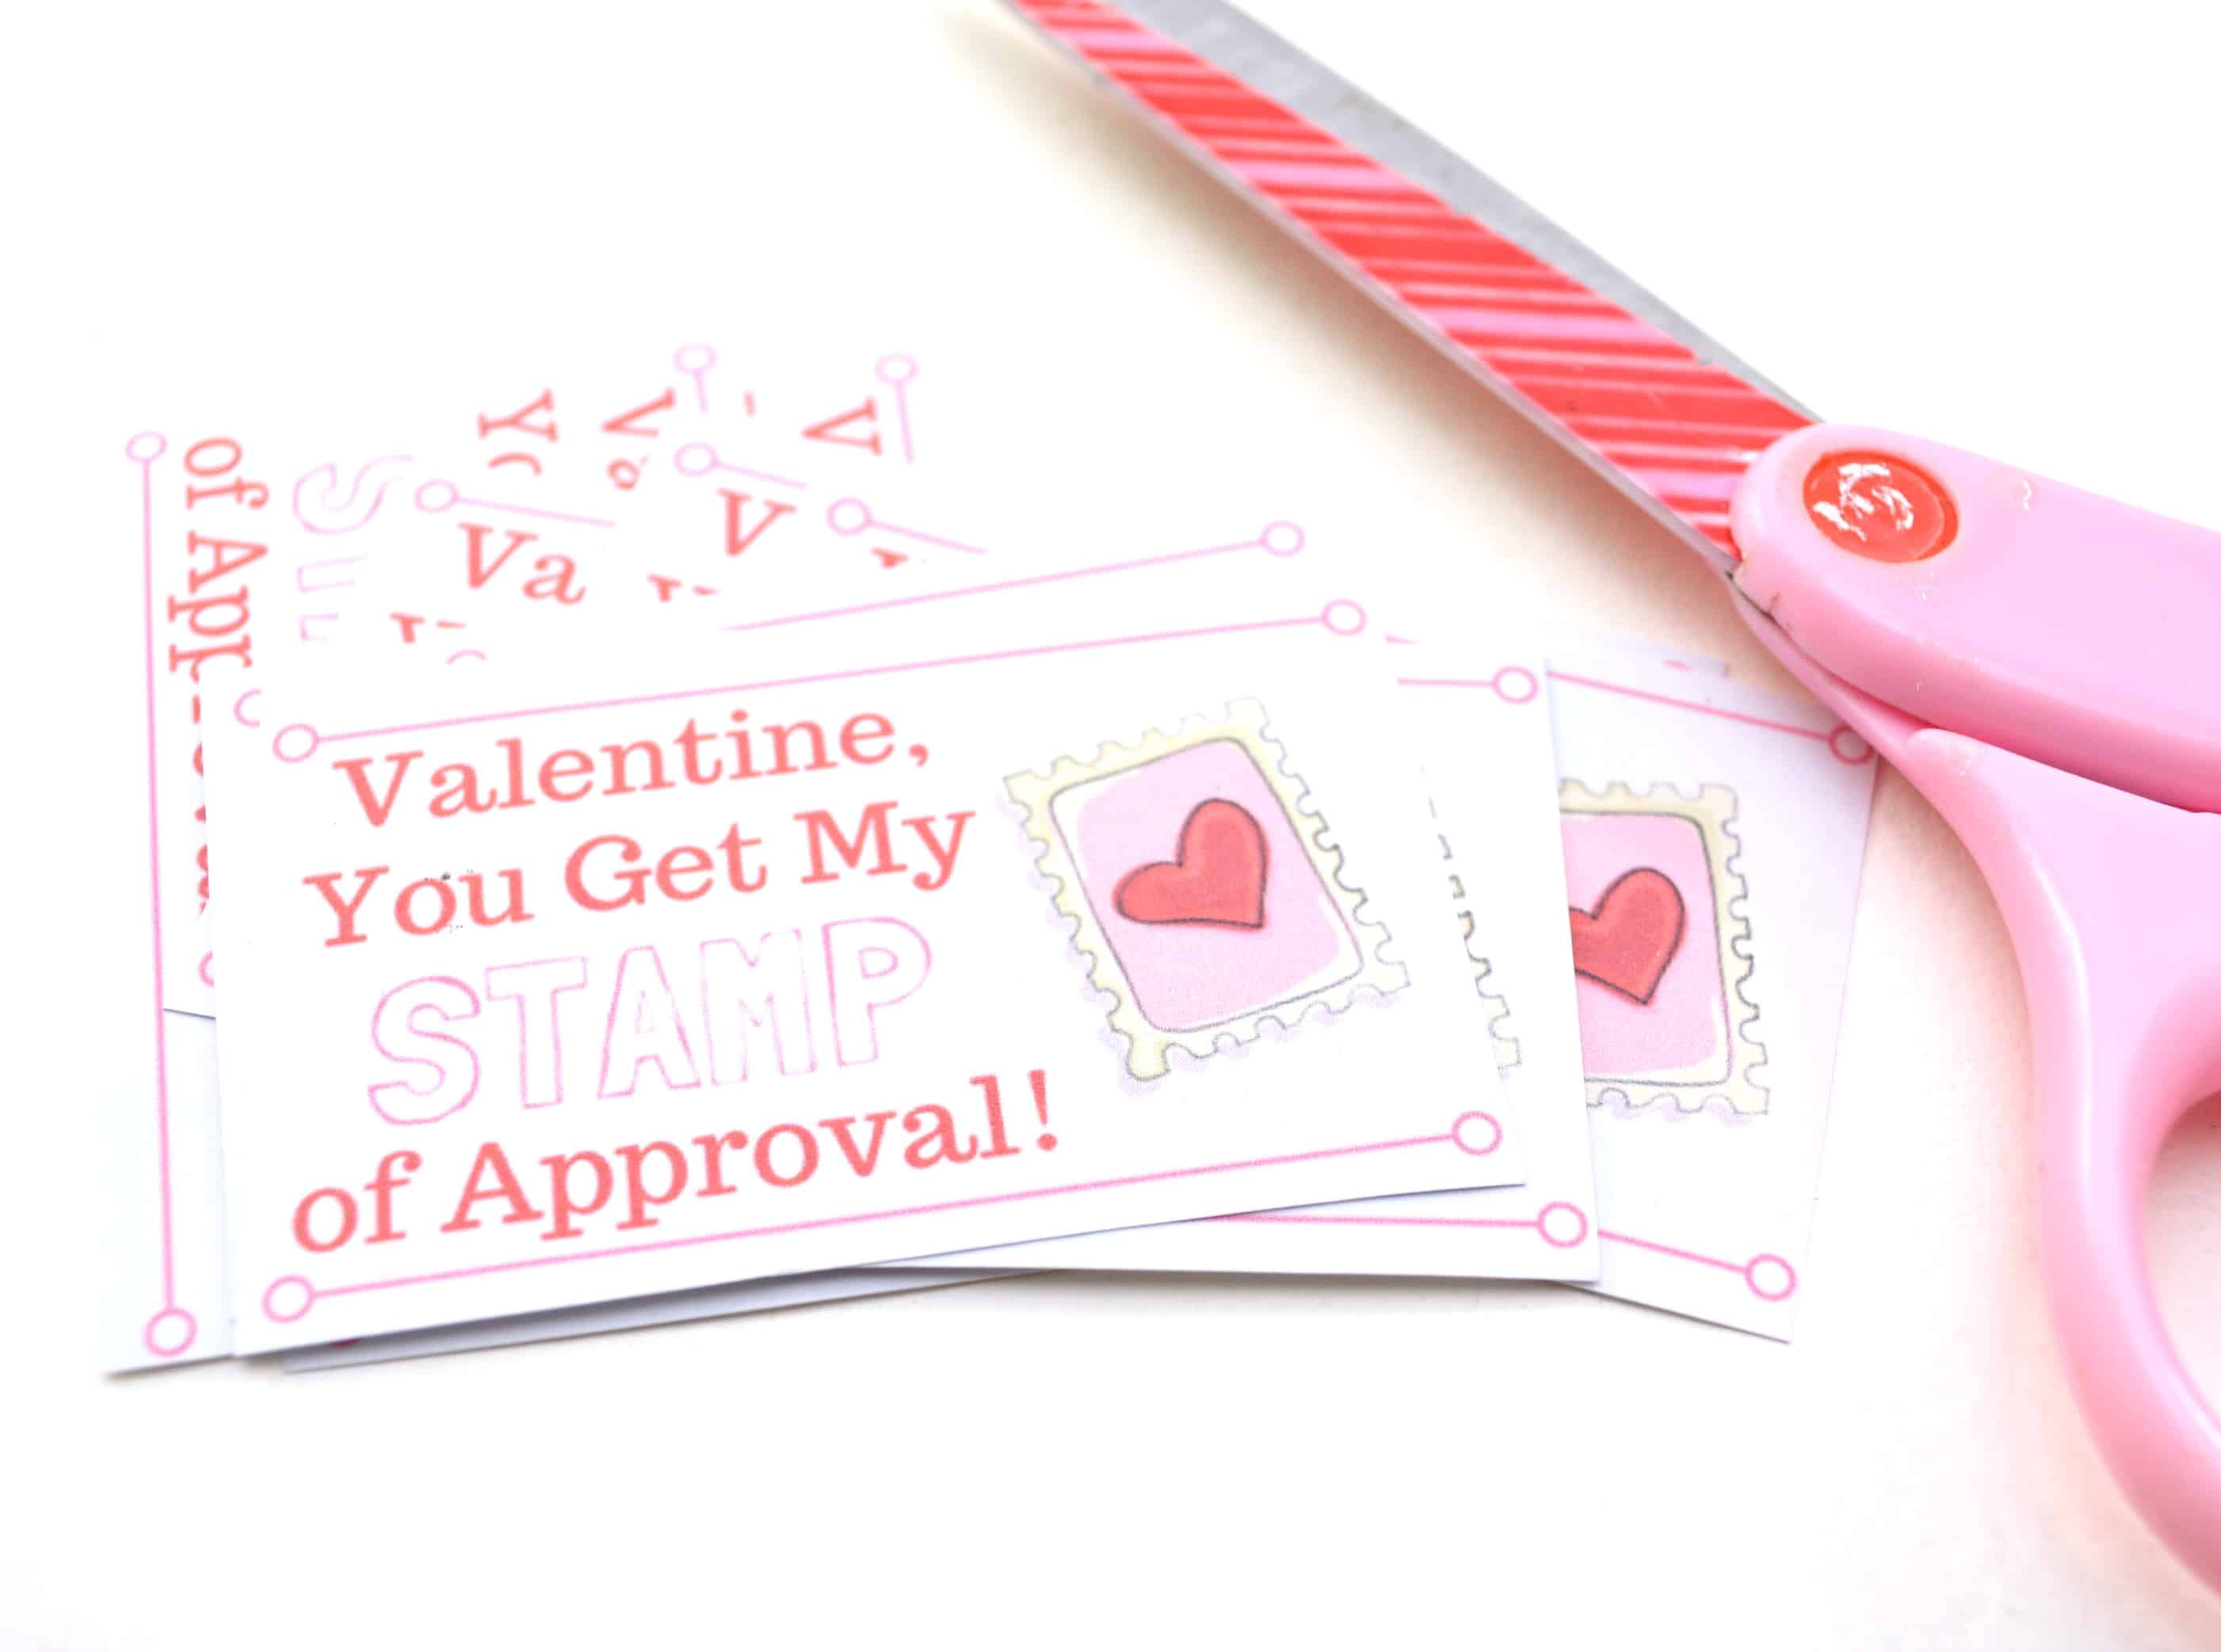 print and cut apart valentine cards